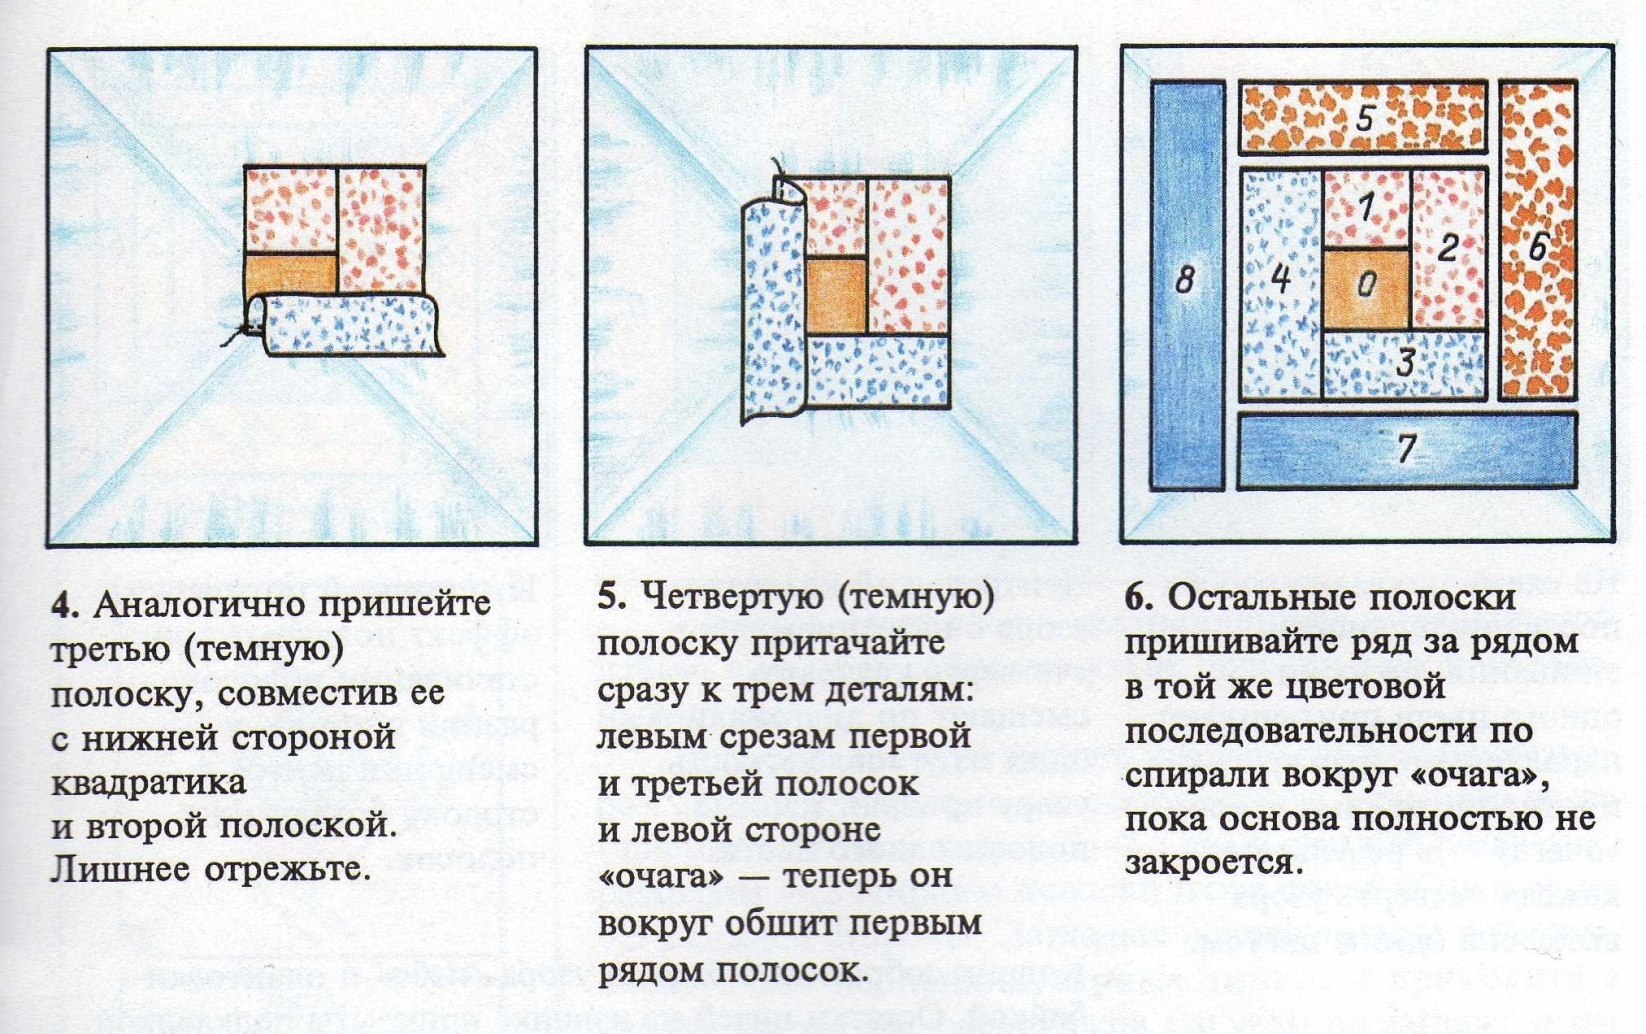 C:\Users\Карина\Pictures\img756.jpg